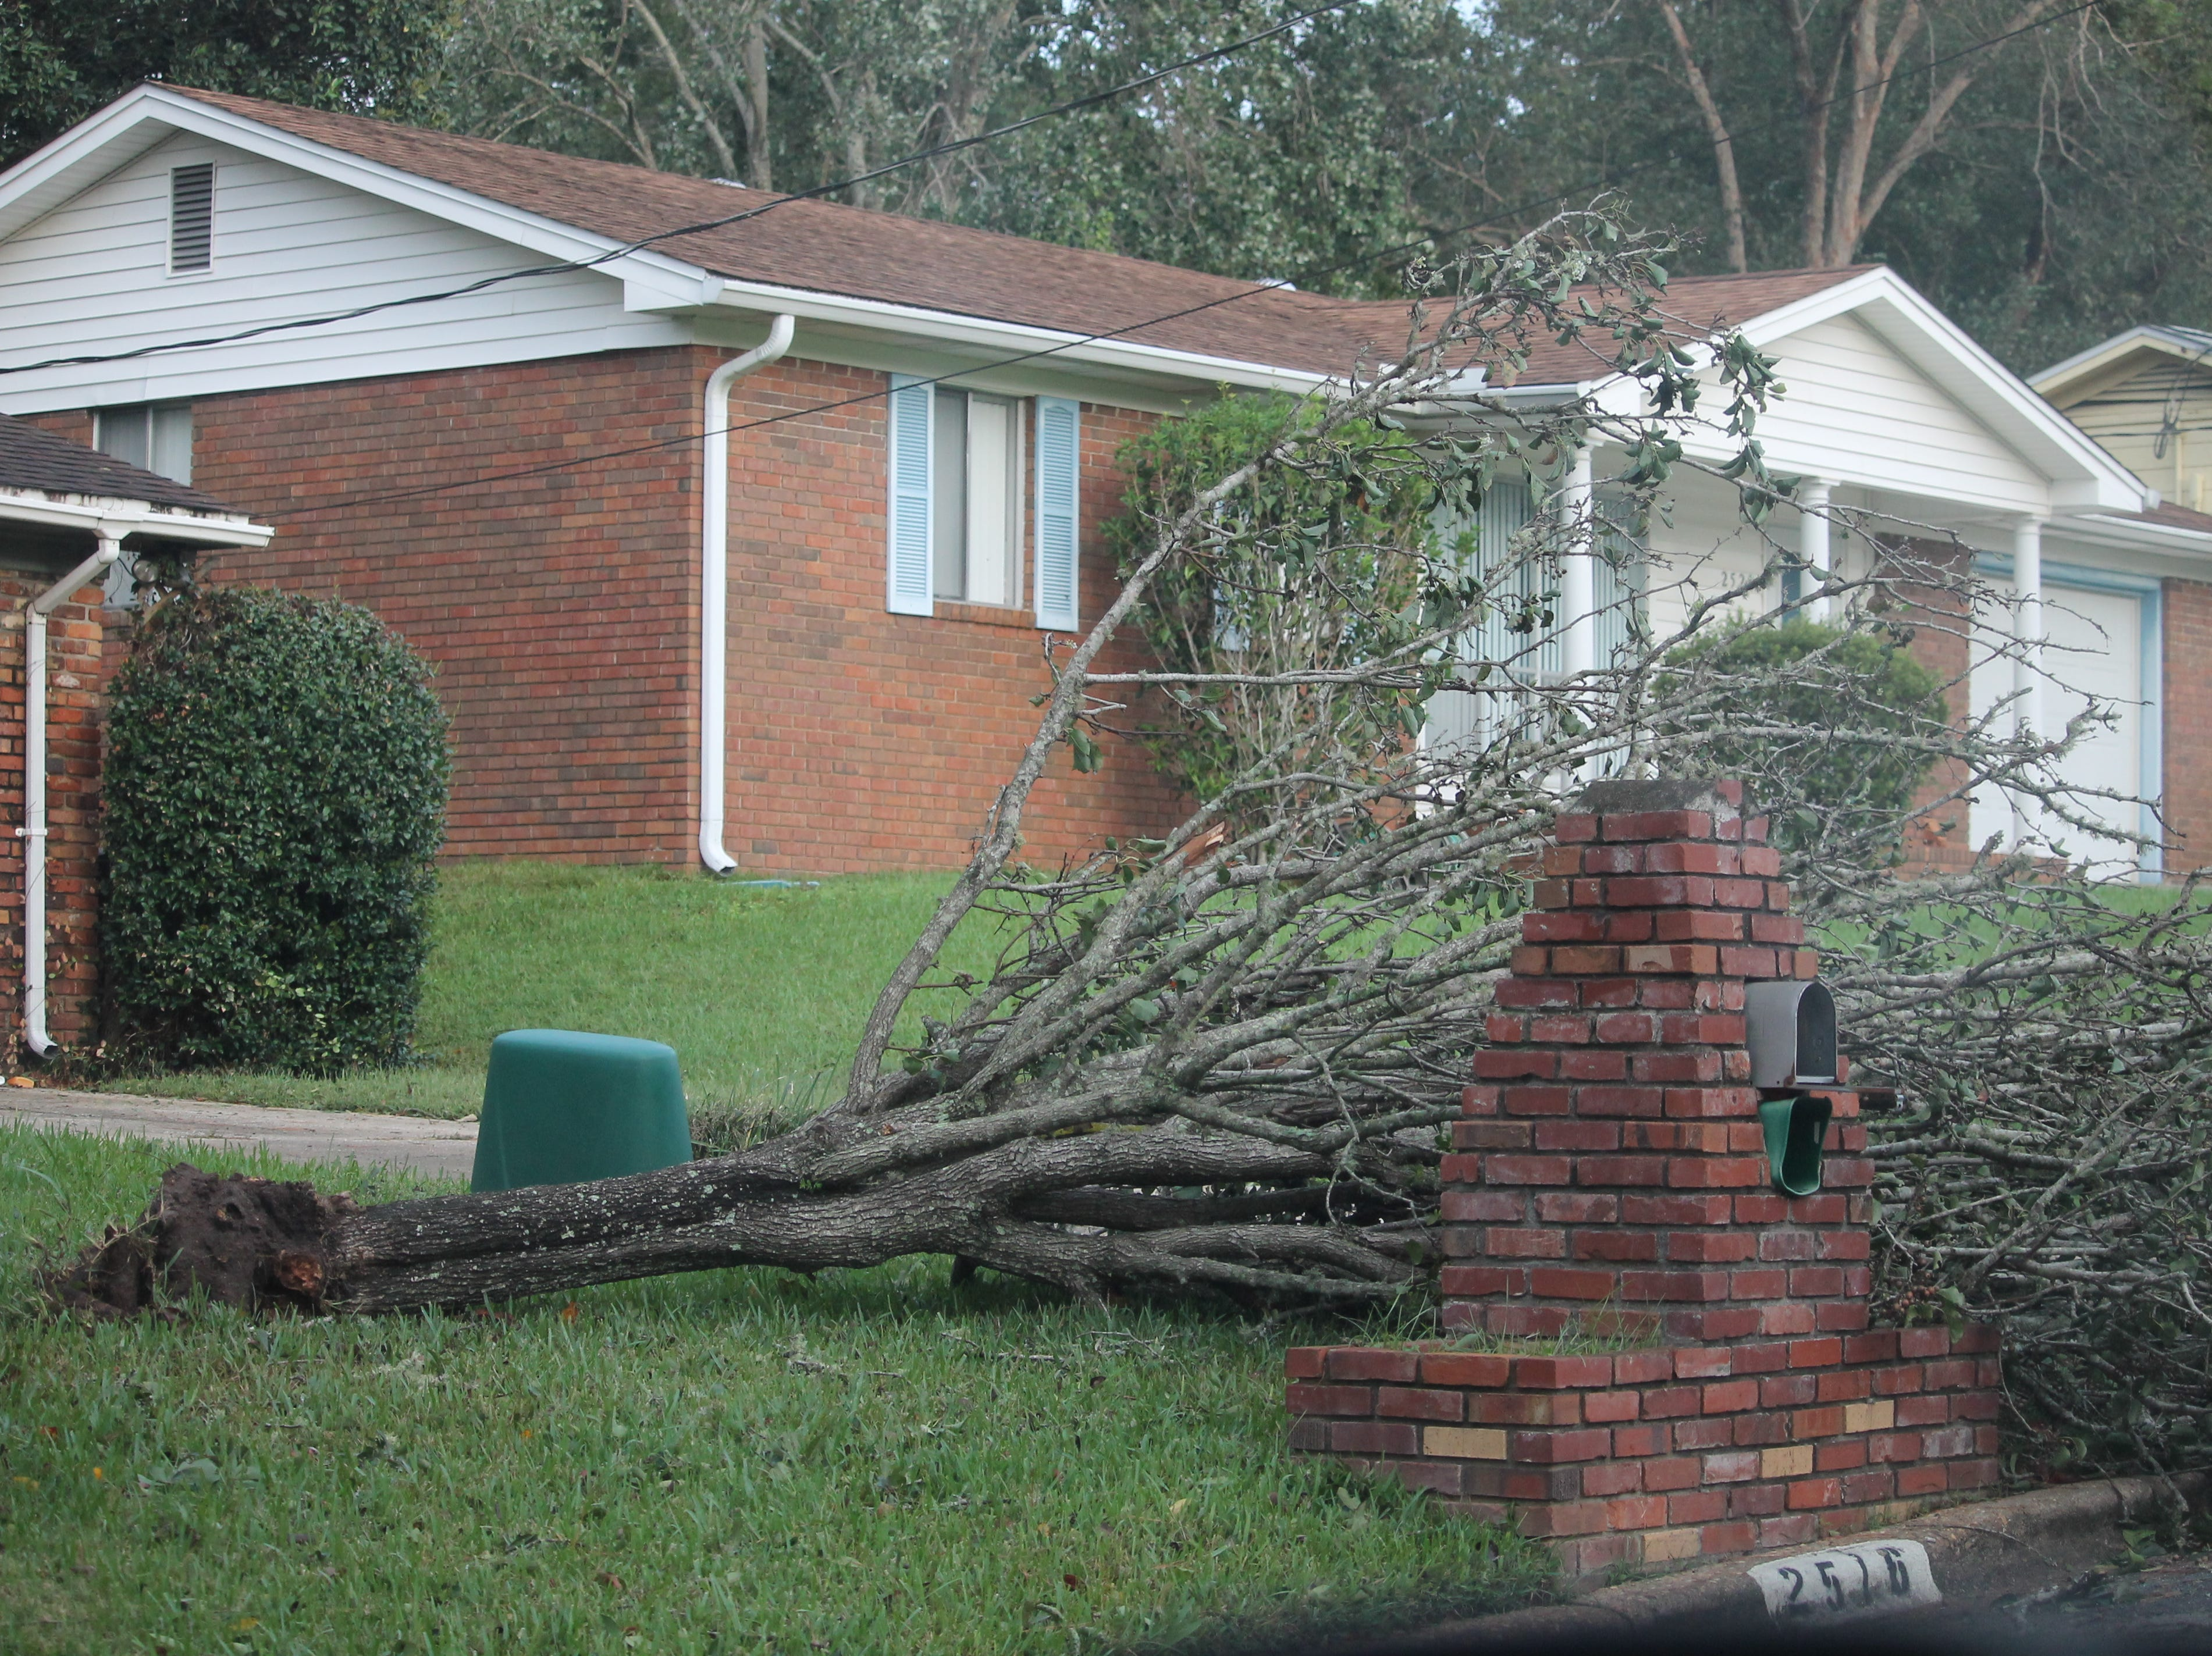 Downed tree in Tallahassee.